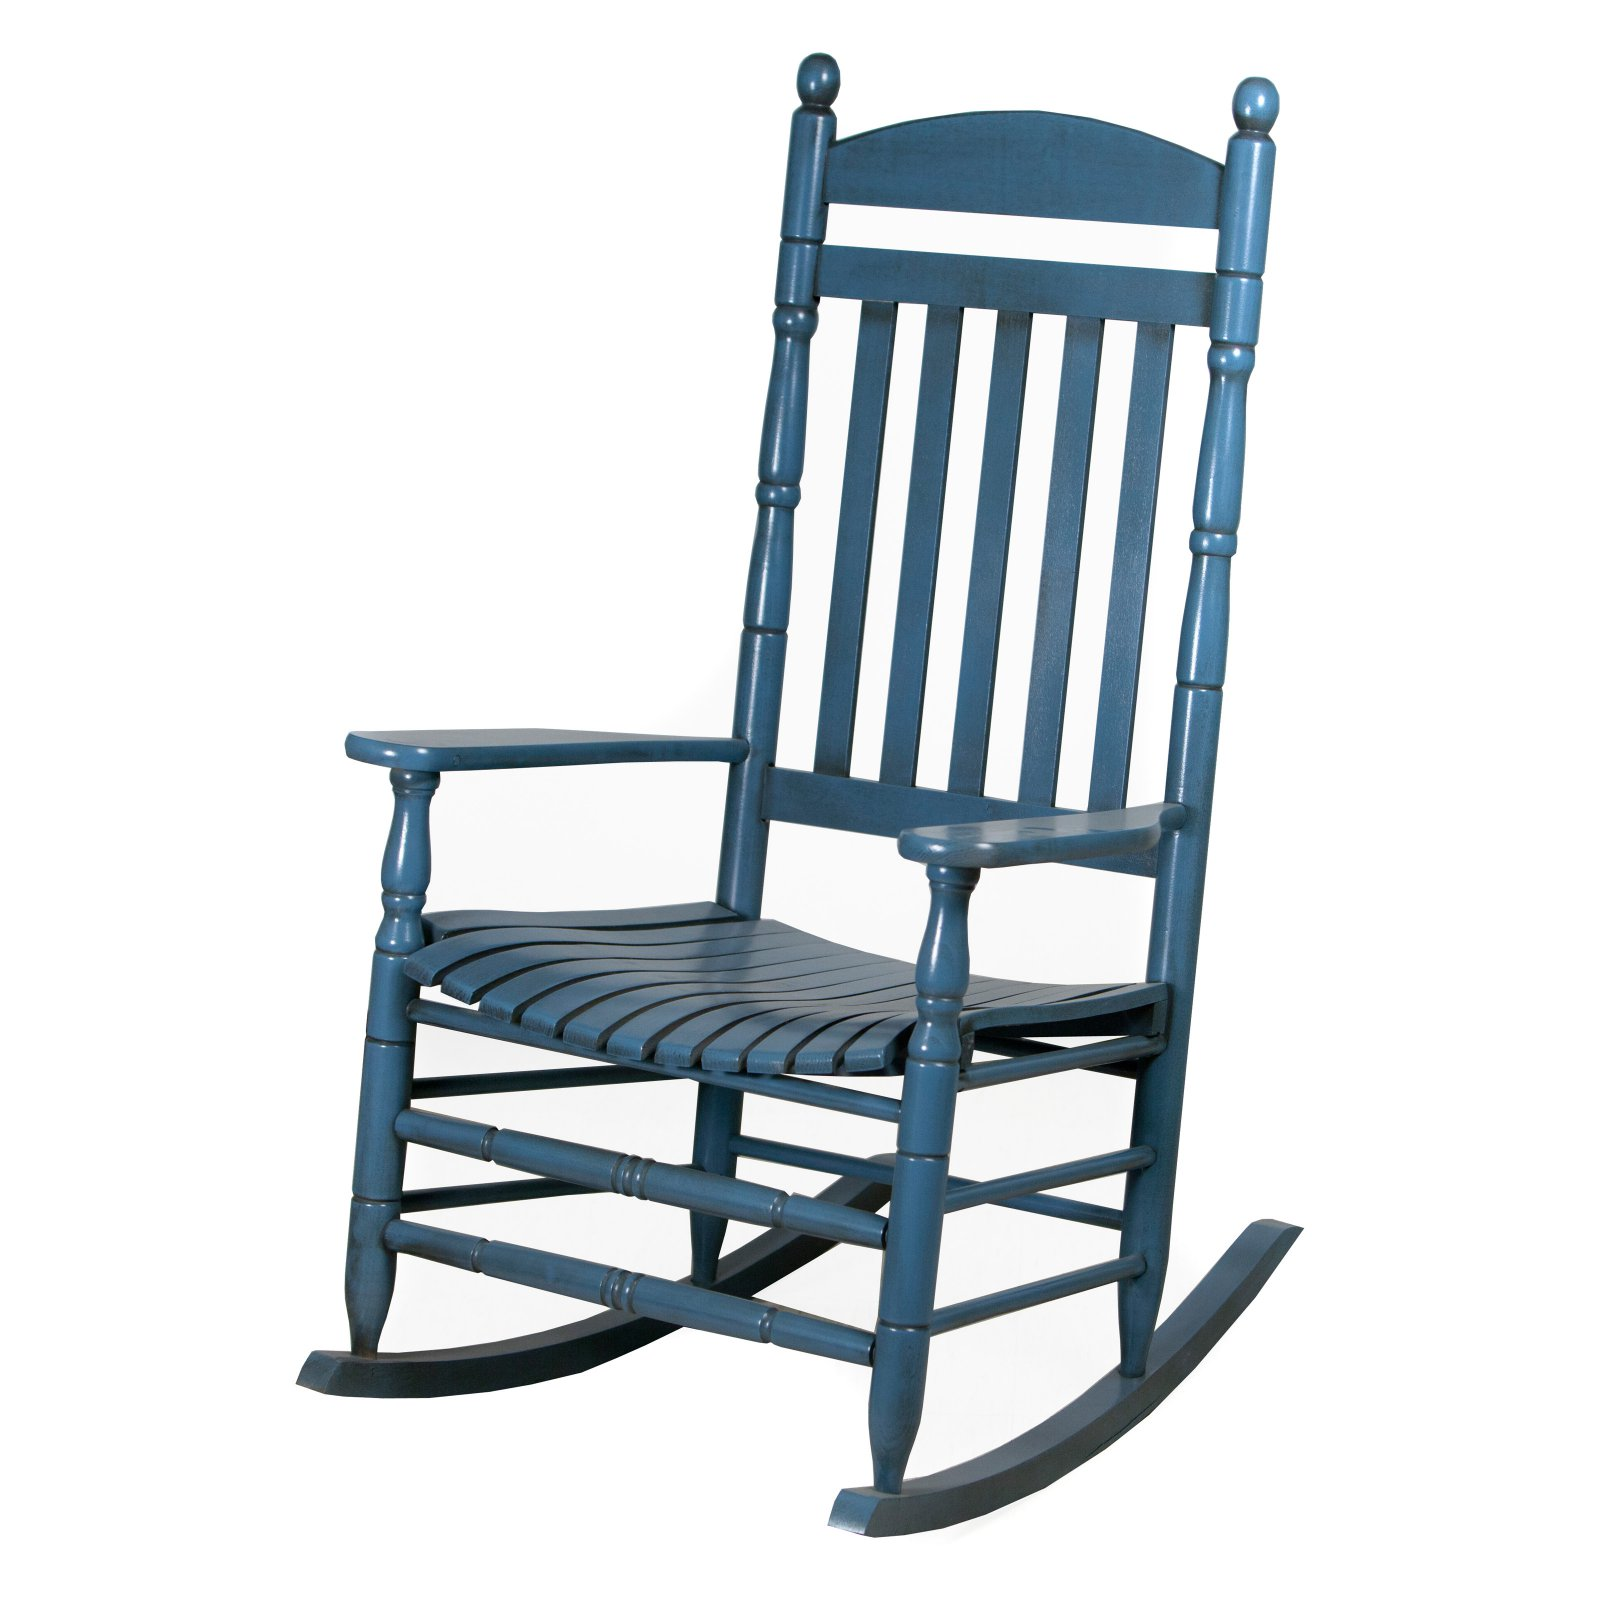 Hinkle Riverside Round Post Slat Back Wood Patio Rocking Chair